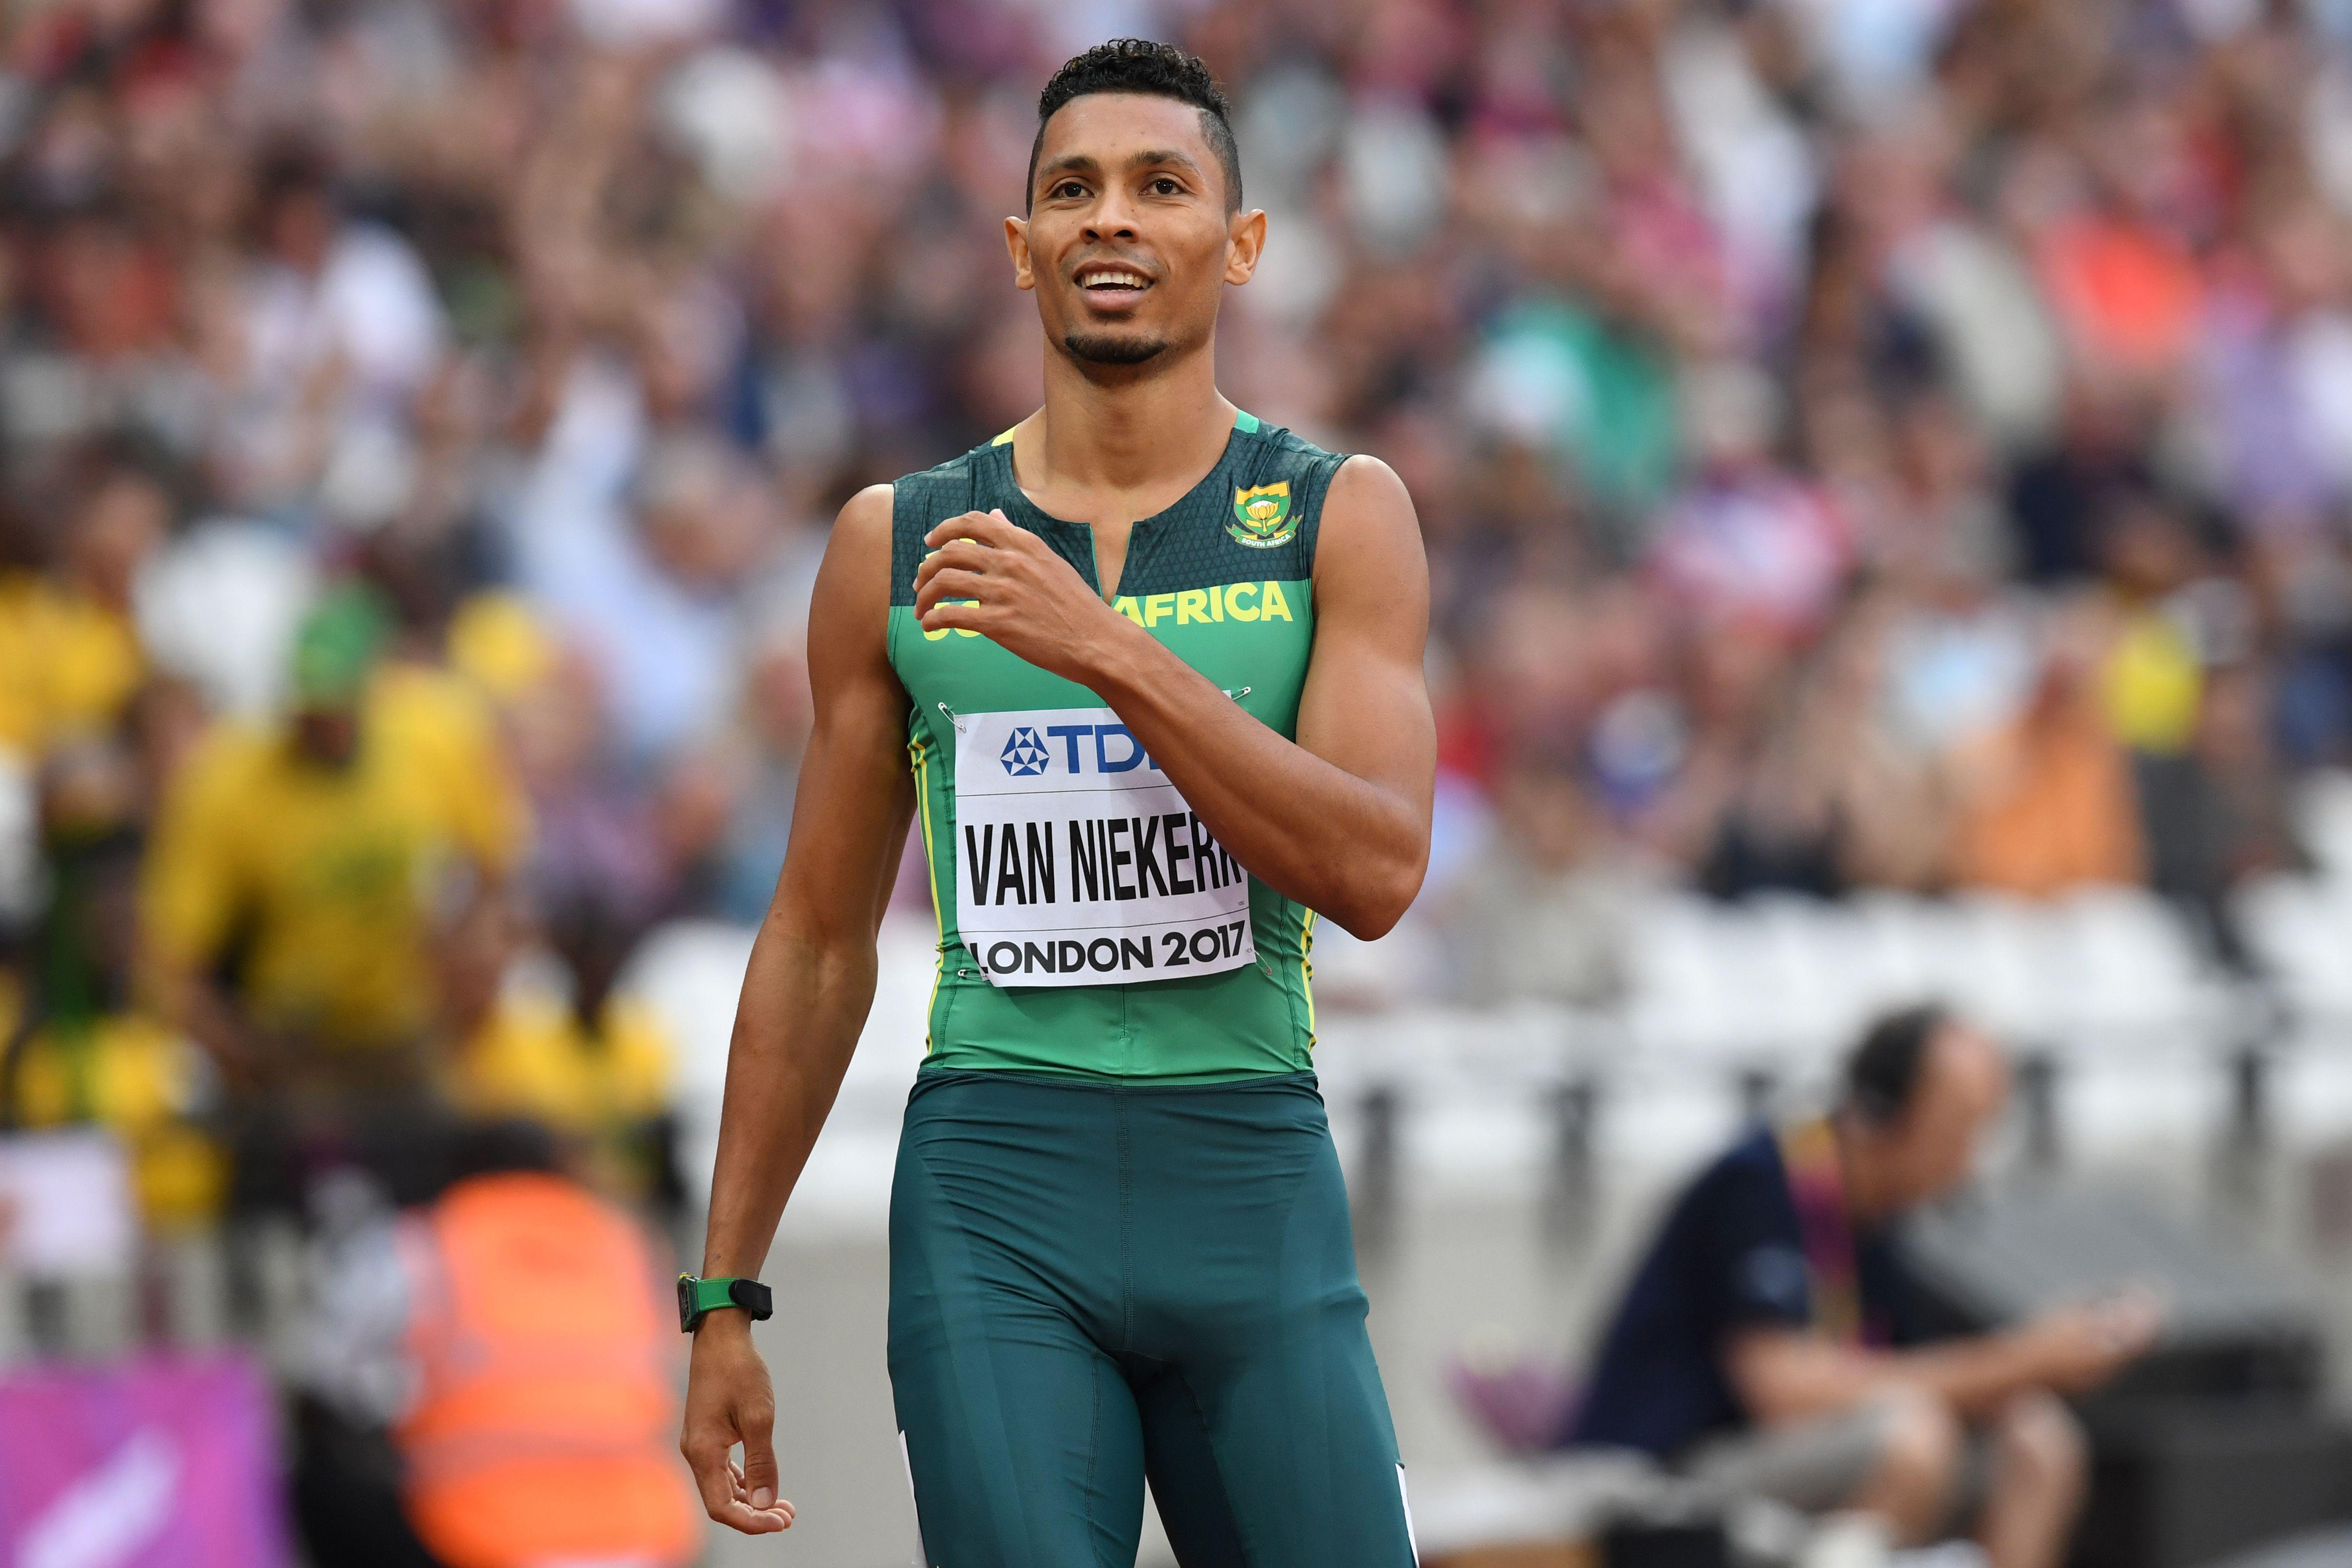 South African Wayde van Niekerk is tipped to be the next superstar of world athletics